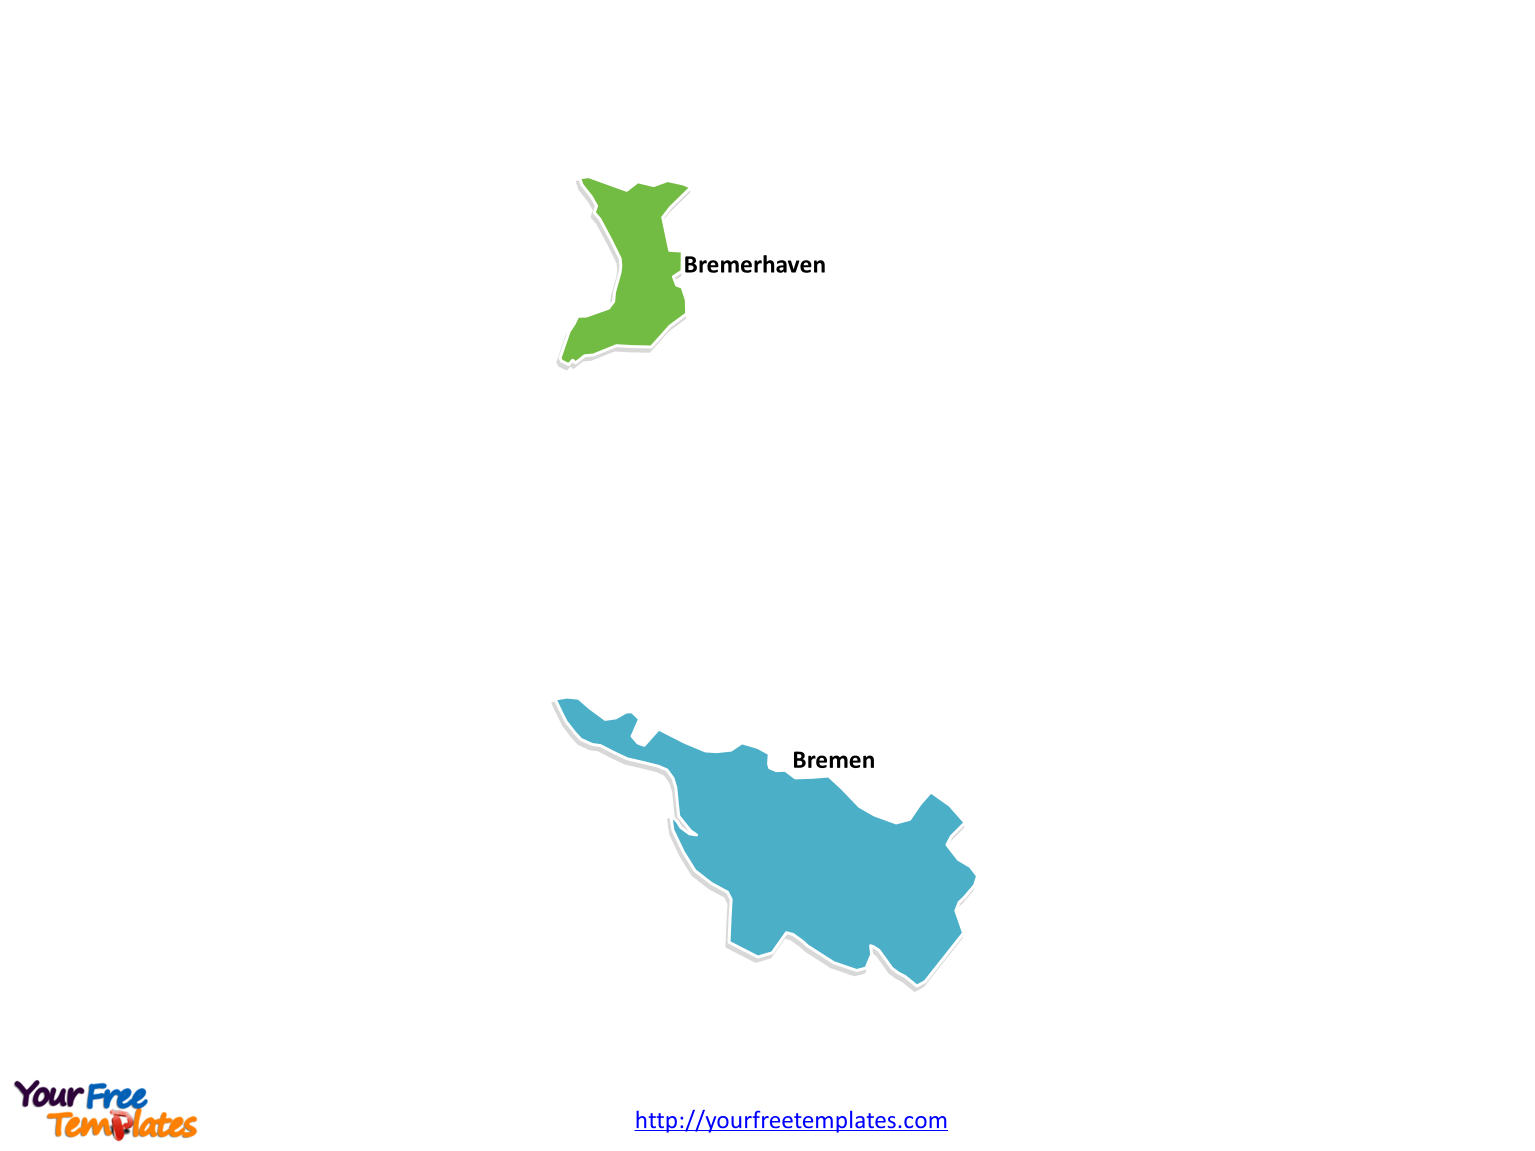 Bremen map with blank outline